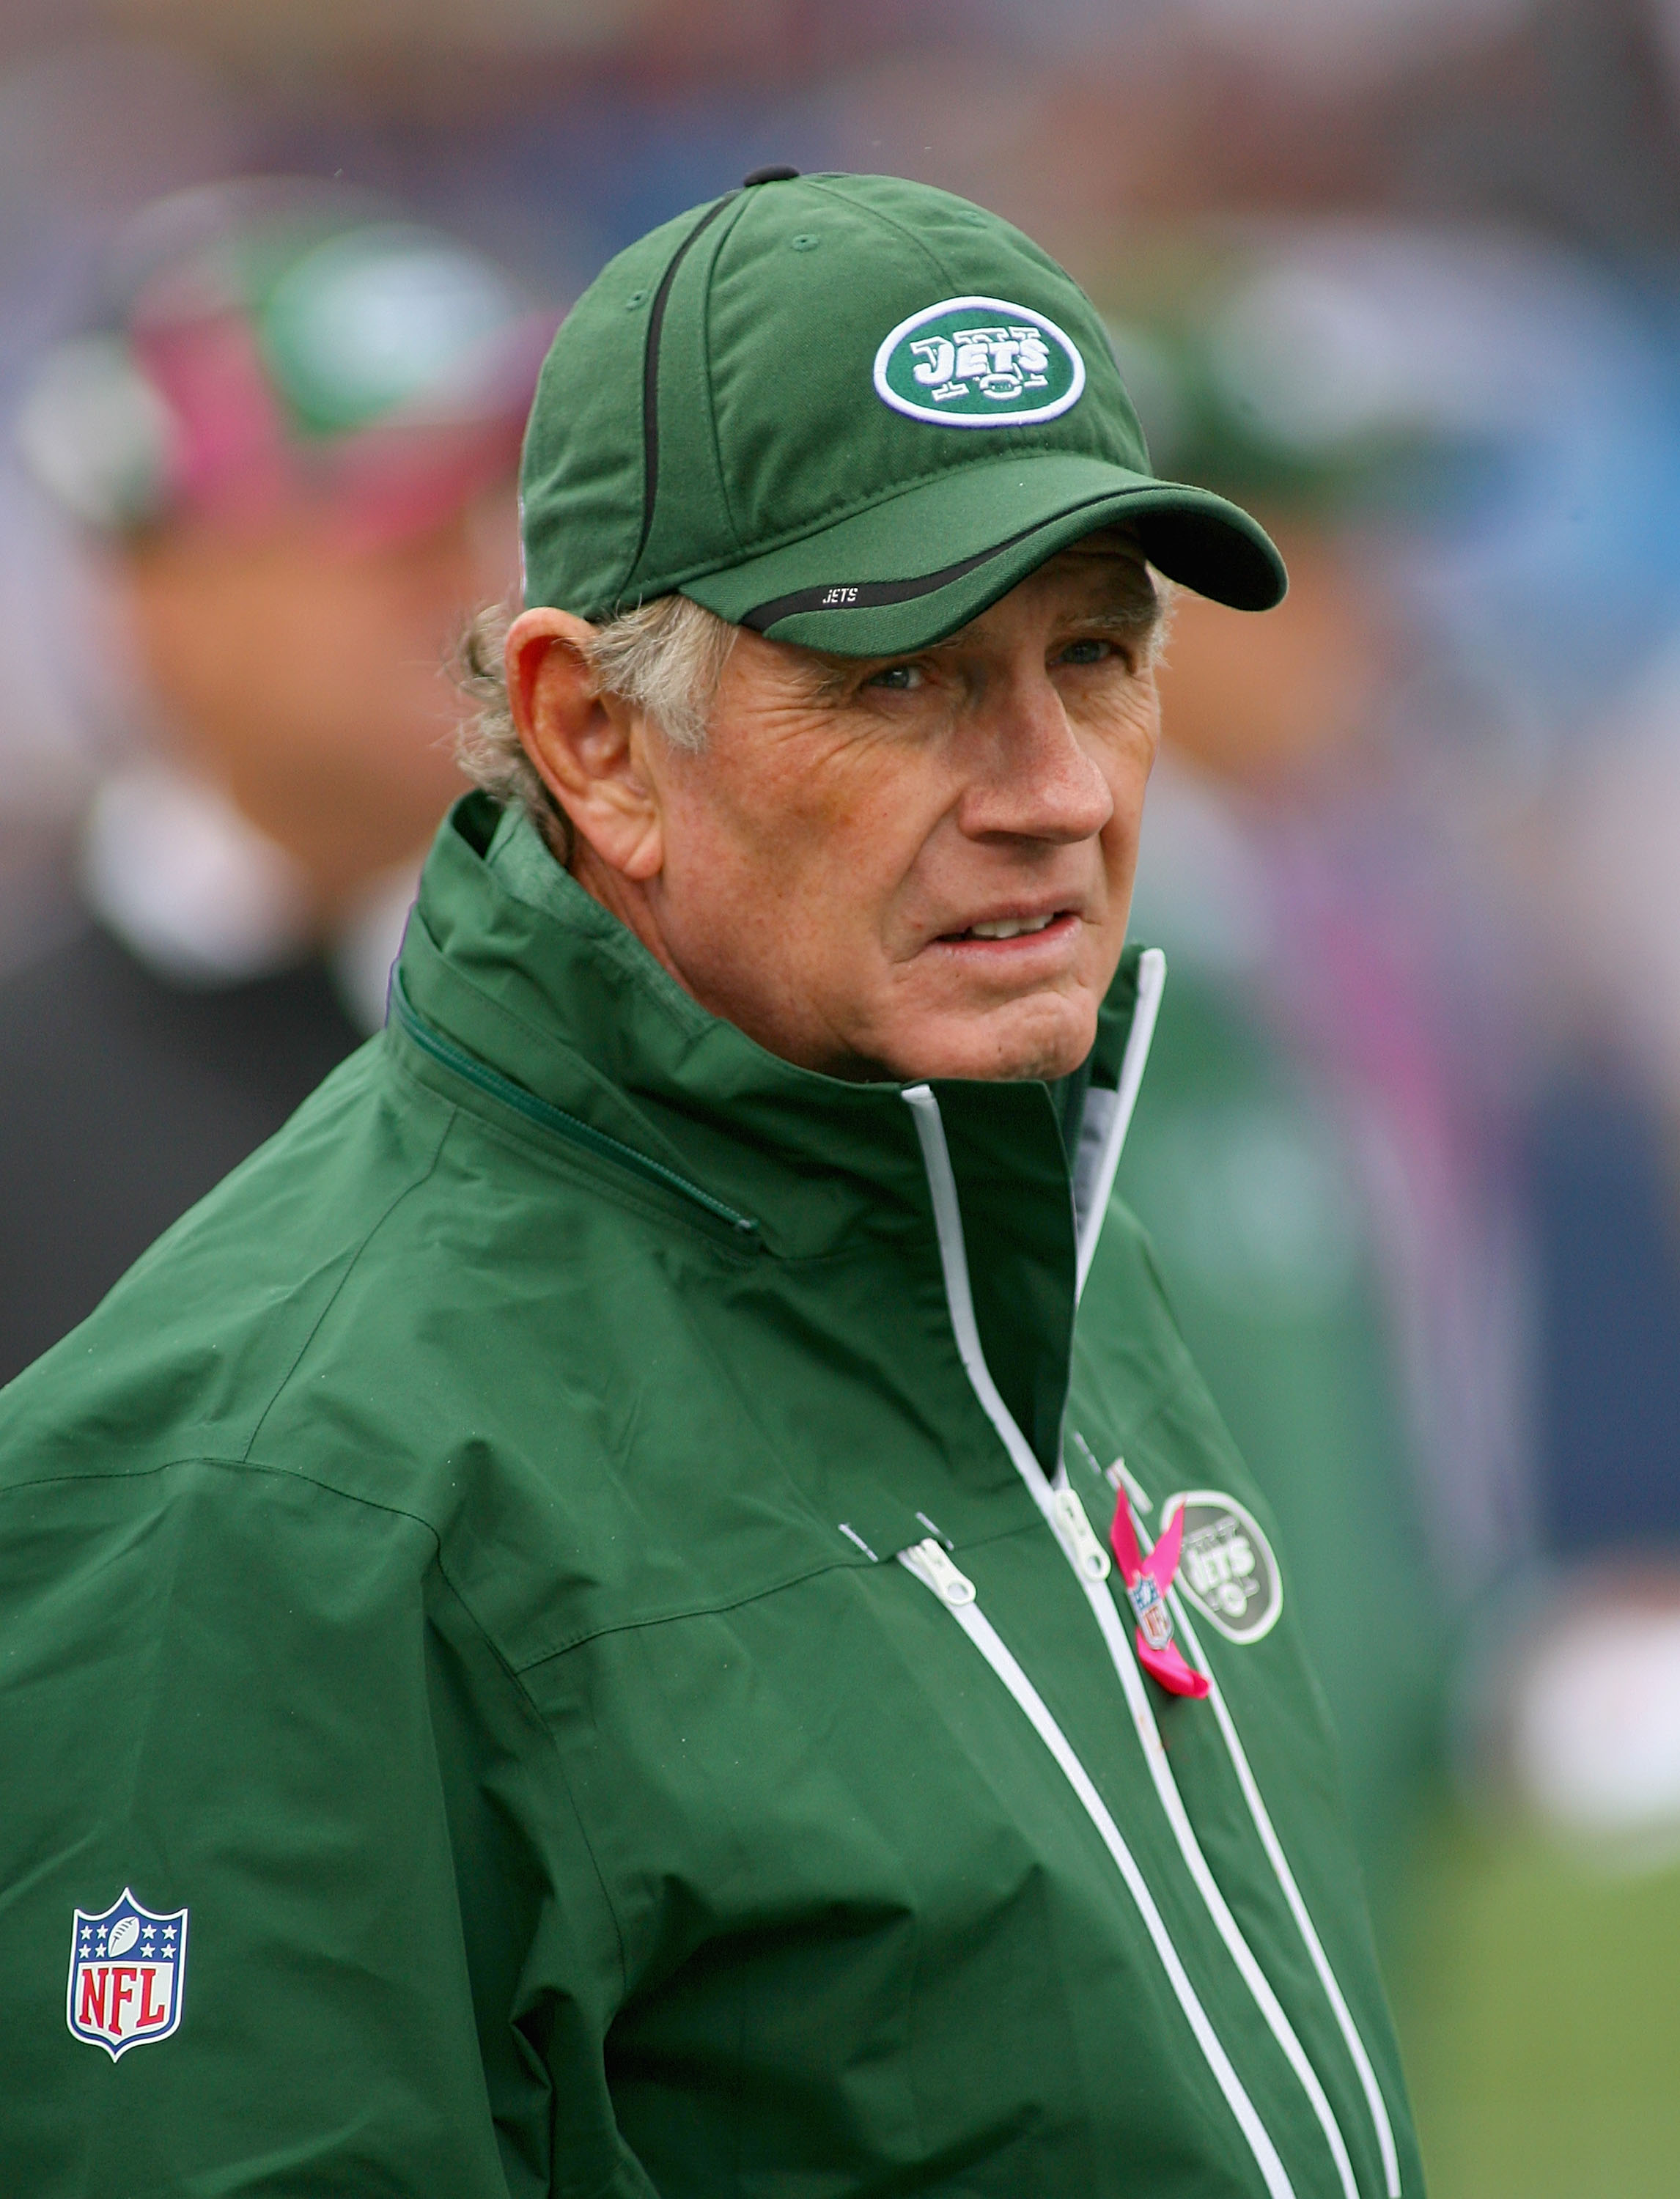 ORCHARD PARK, NY - OCTOBER 03:  Mike Westhoff, Special Teams Coordinator of the New York Jets stands on the sidelines against  the Buffalo Bills at Ralph Wilson Stadium on October 3, 2010 in Orchard Park, New York. The Jets won 38-14.  (Photo by Rick Stew